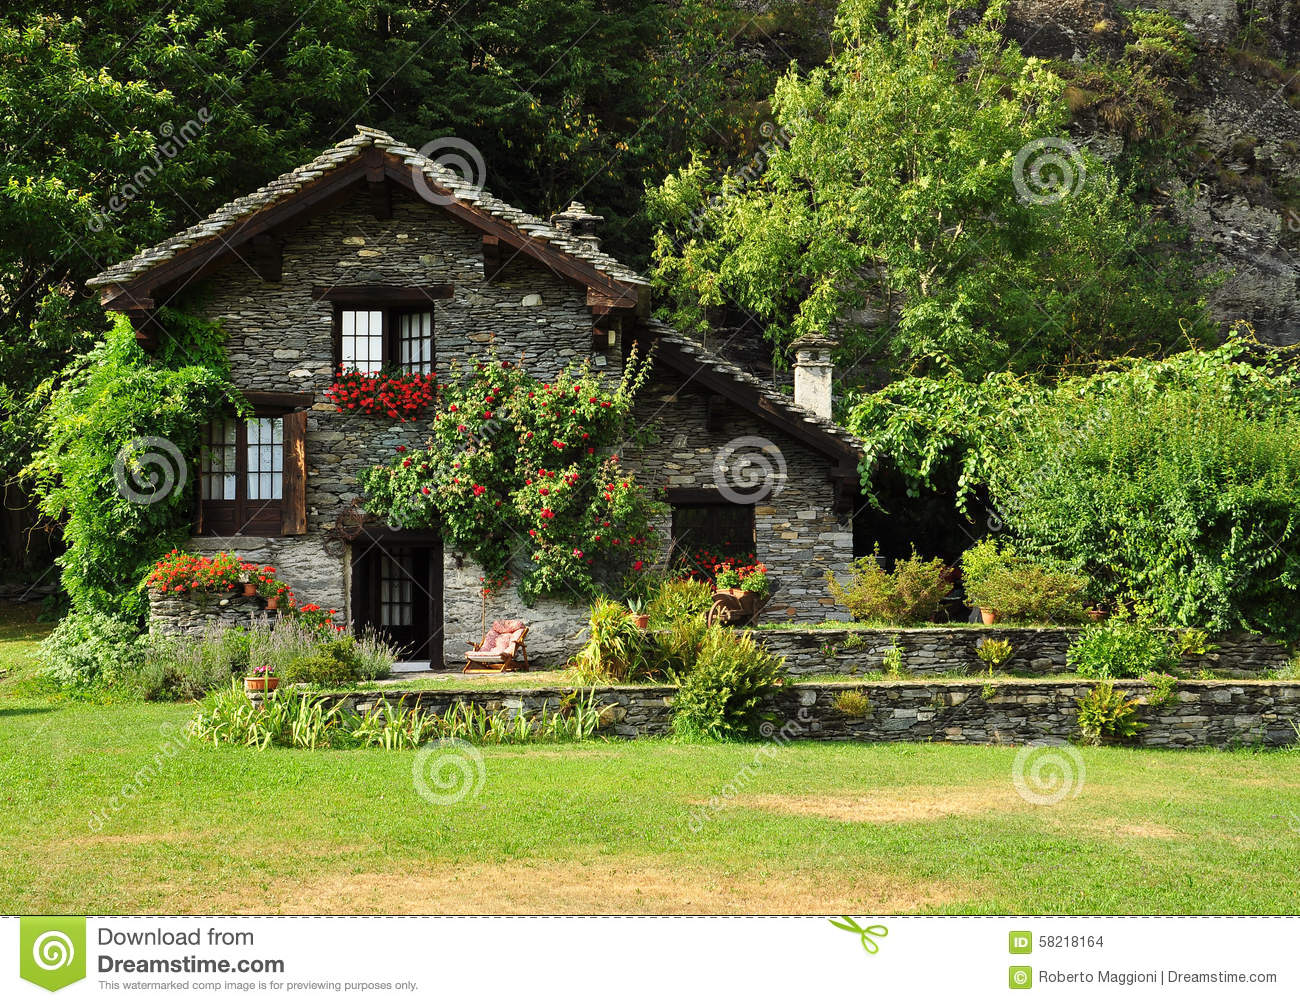 Dream stone house and garden in the italian alps stock House garden pics